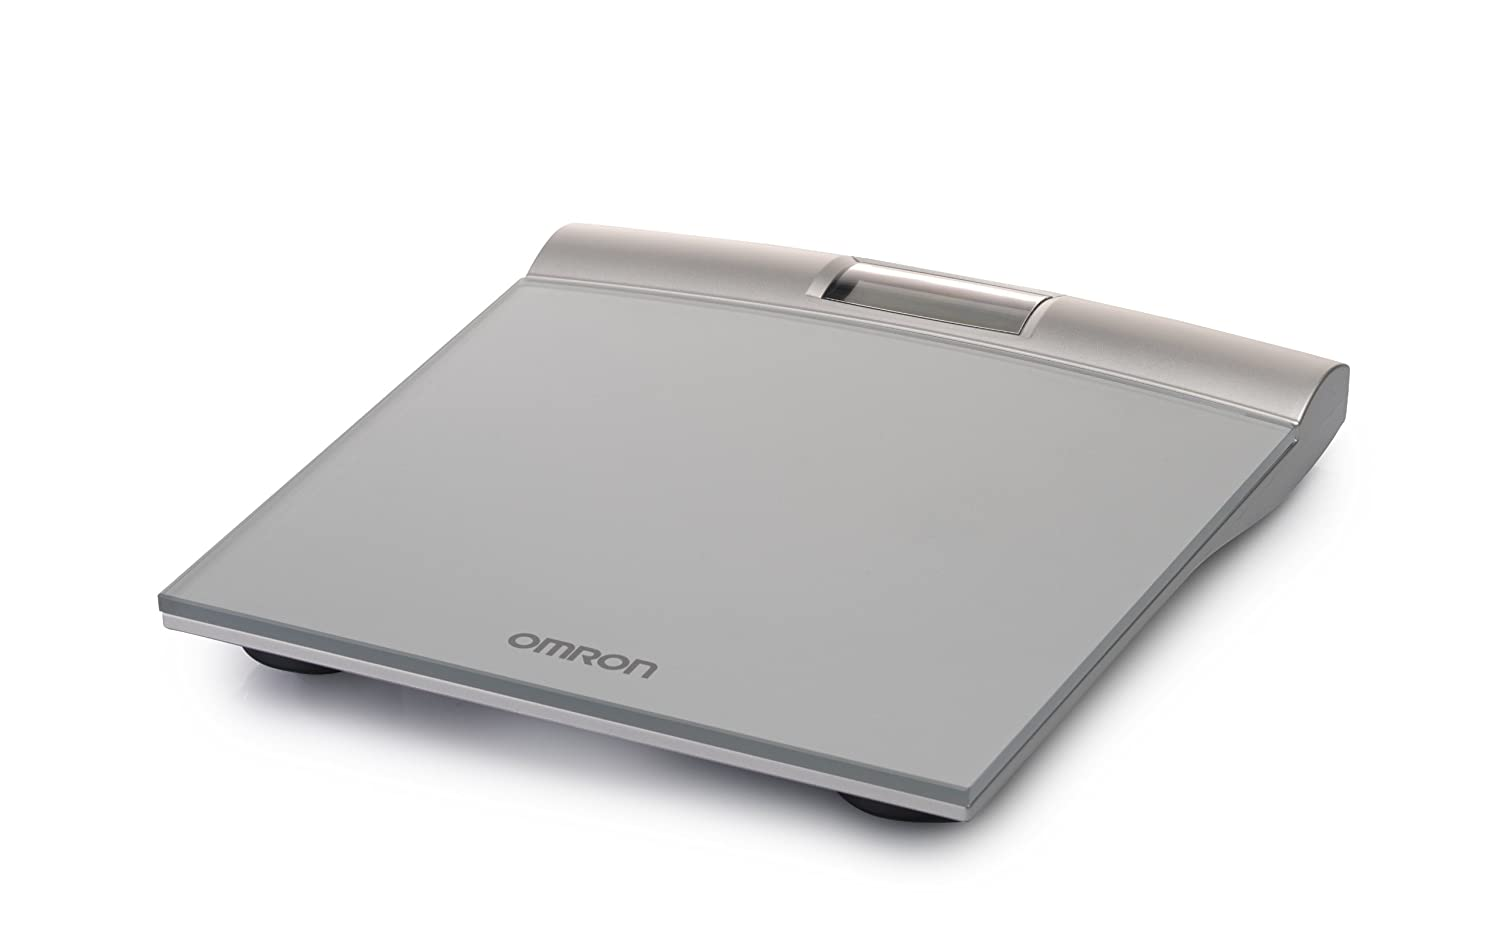 Amazon.com: Omron HN283 Electronic Digital Personal Bathroom Scale: Health & Personal Care